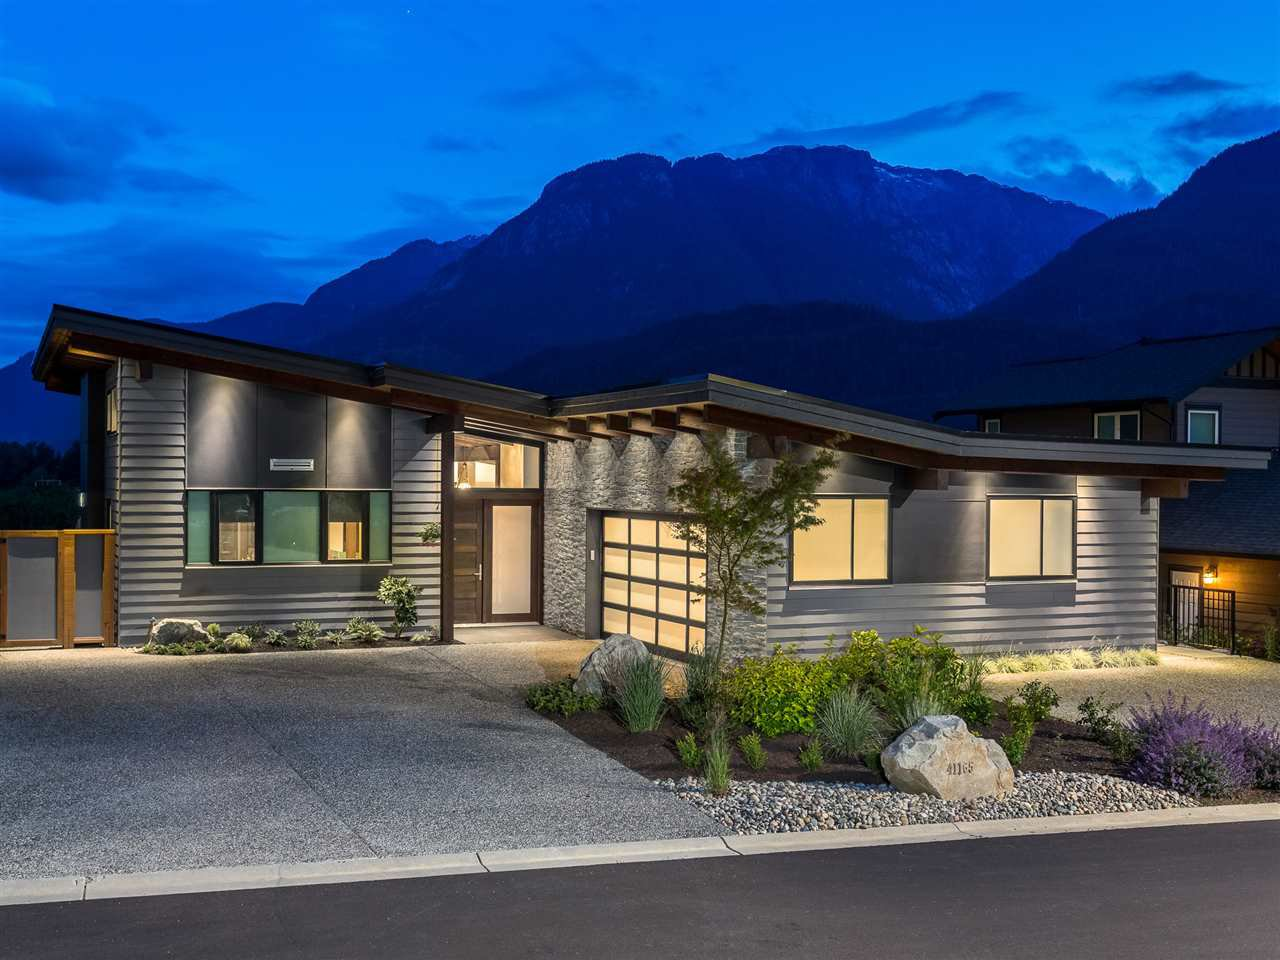 Main Photo: 41165 ROCKRIDGE Place in Squamish: Tantalus House for sale : MLS®# R2167179